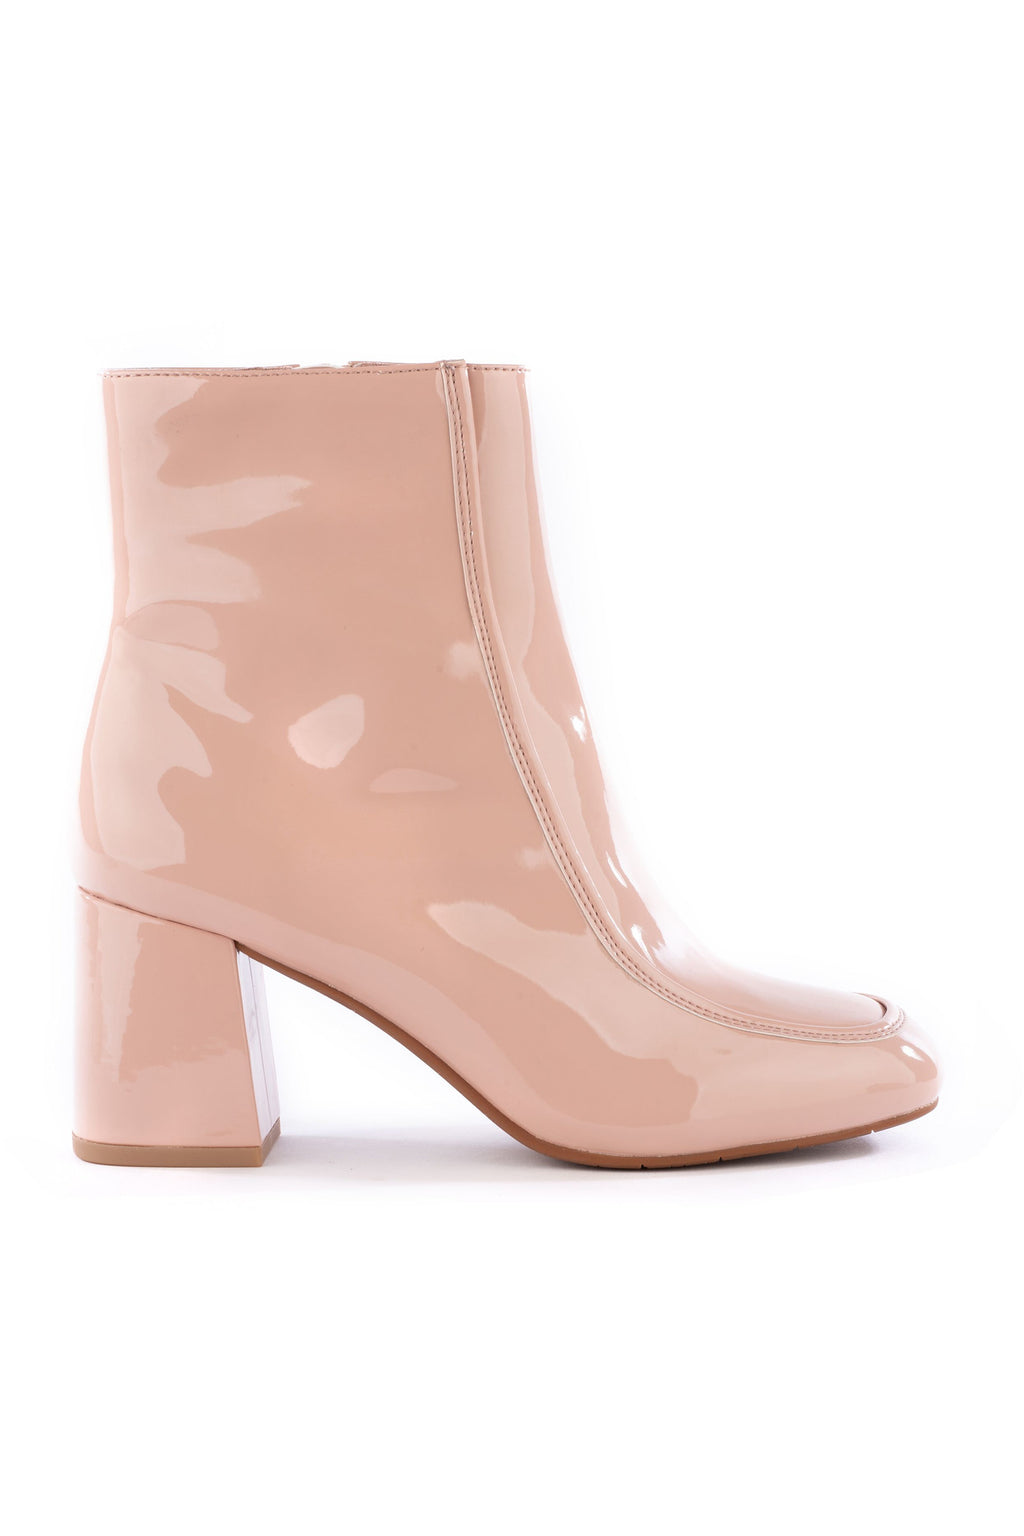 After All Blush Patent Leather Booties